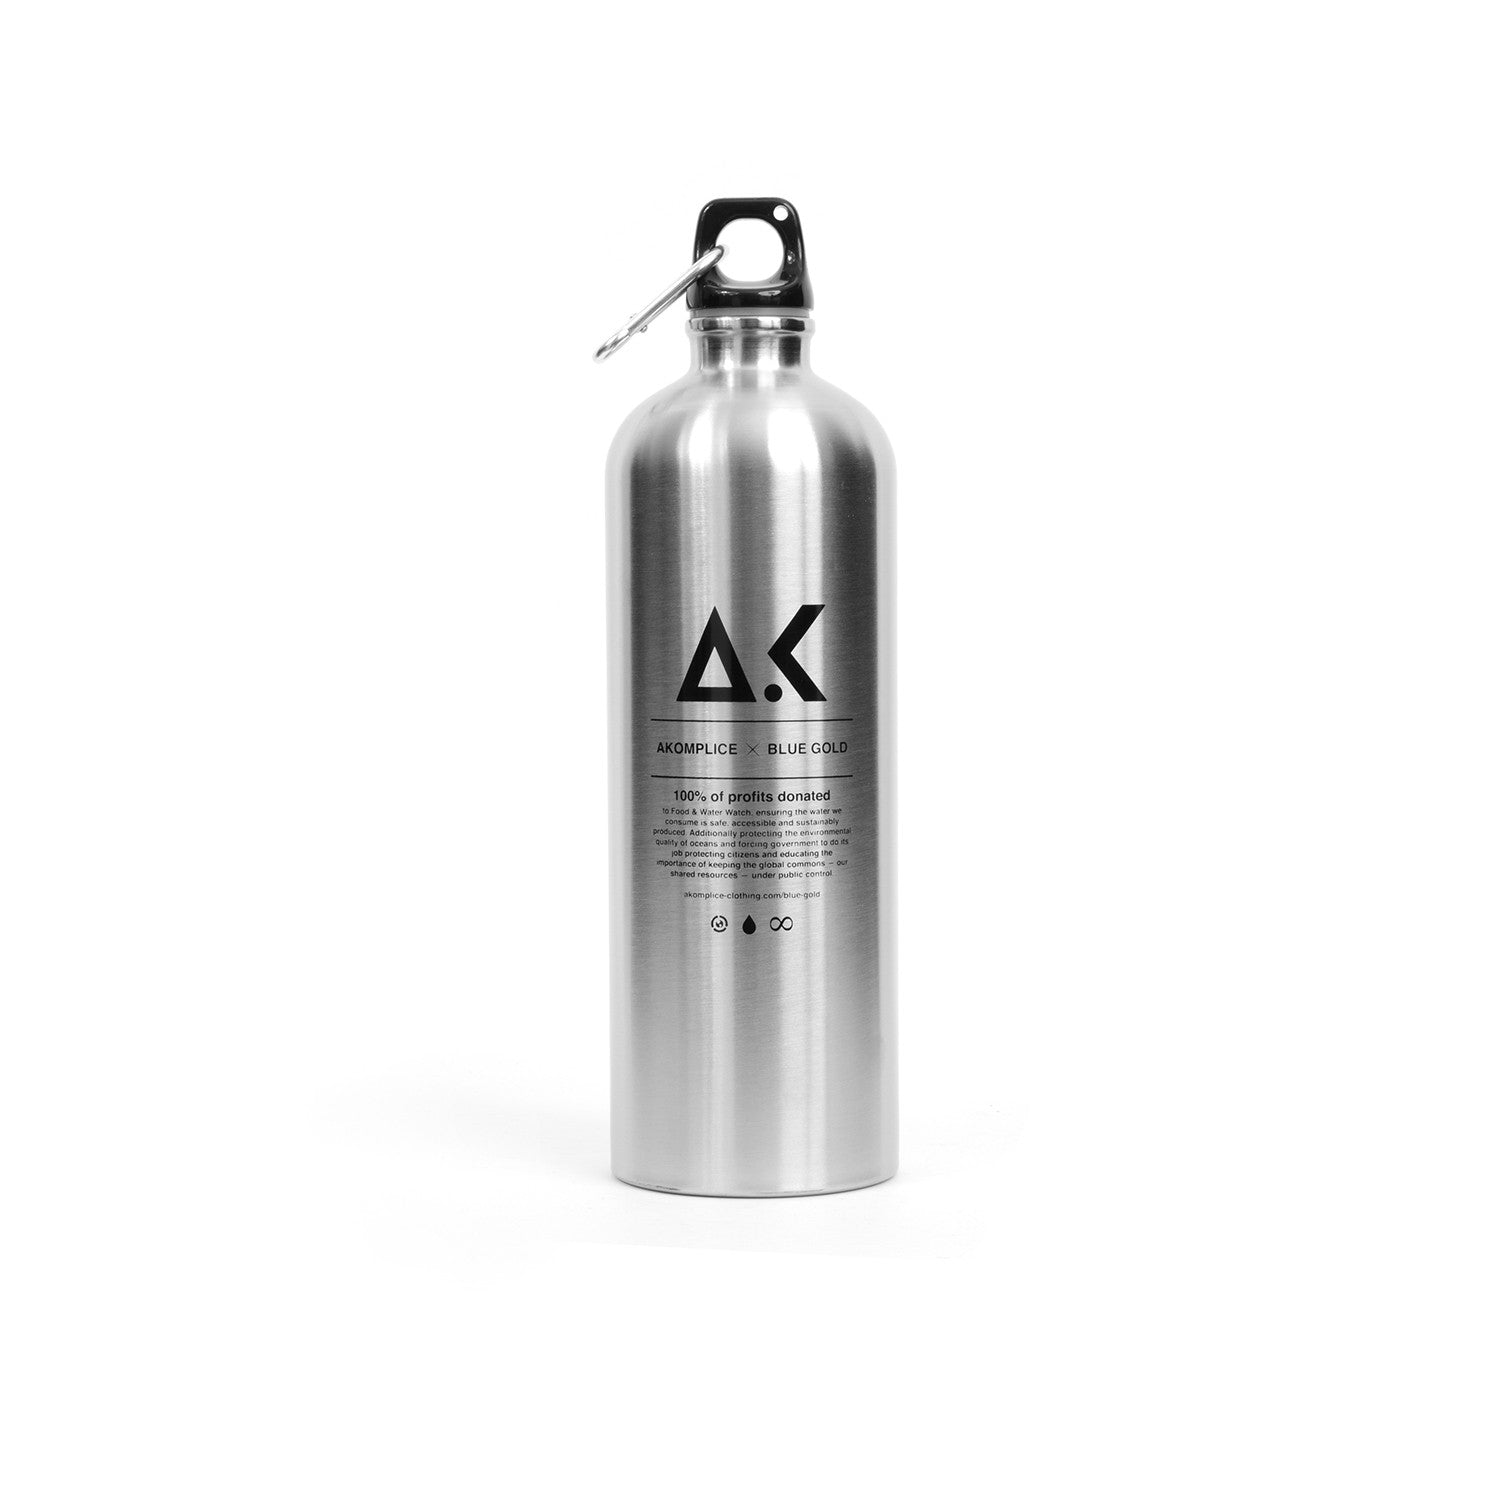 Akomplice Blue Gold x AK Water Bottle Silver - Concrete